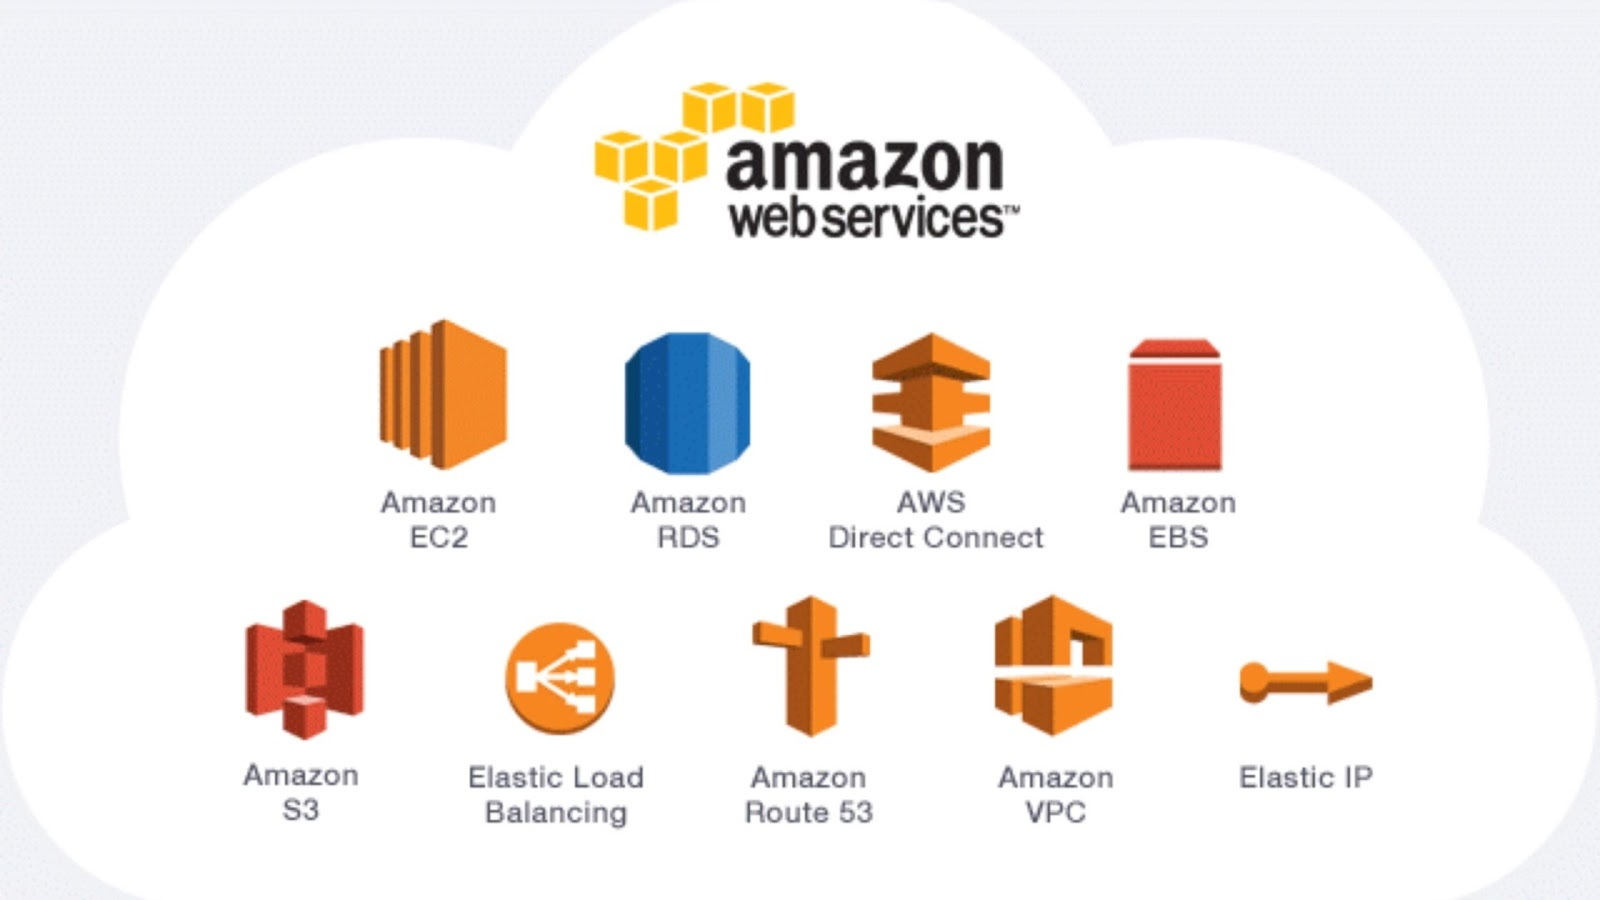 Innovation Transfer with Amazon Web Services (AWS)